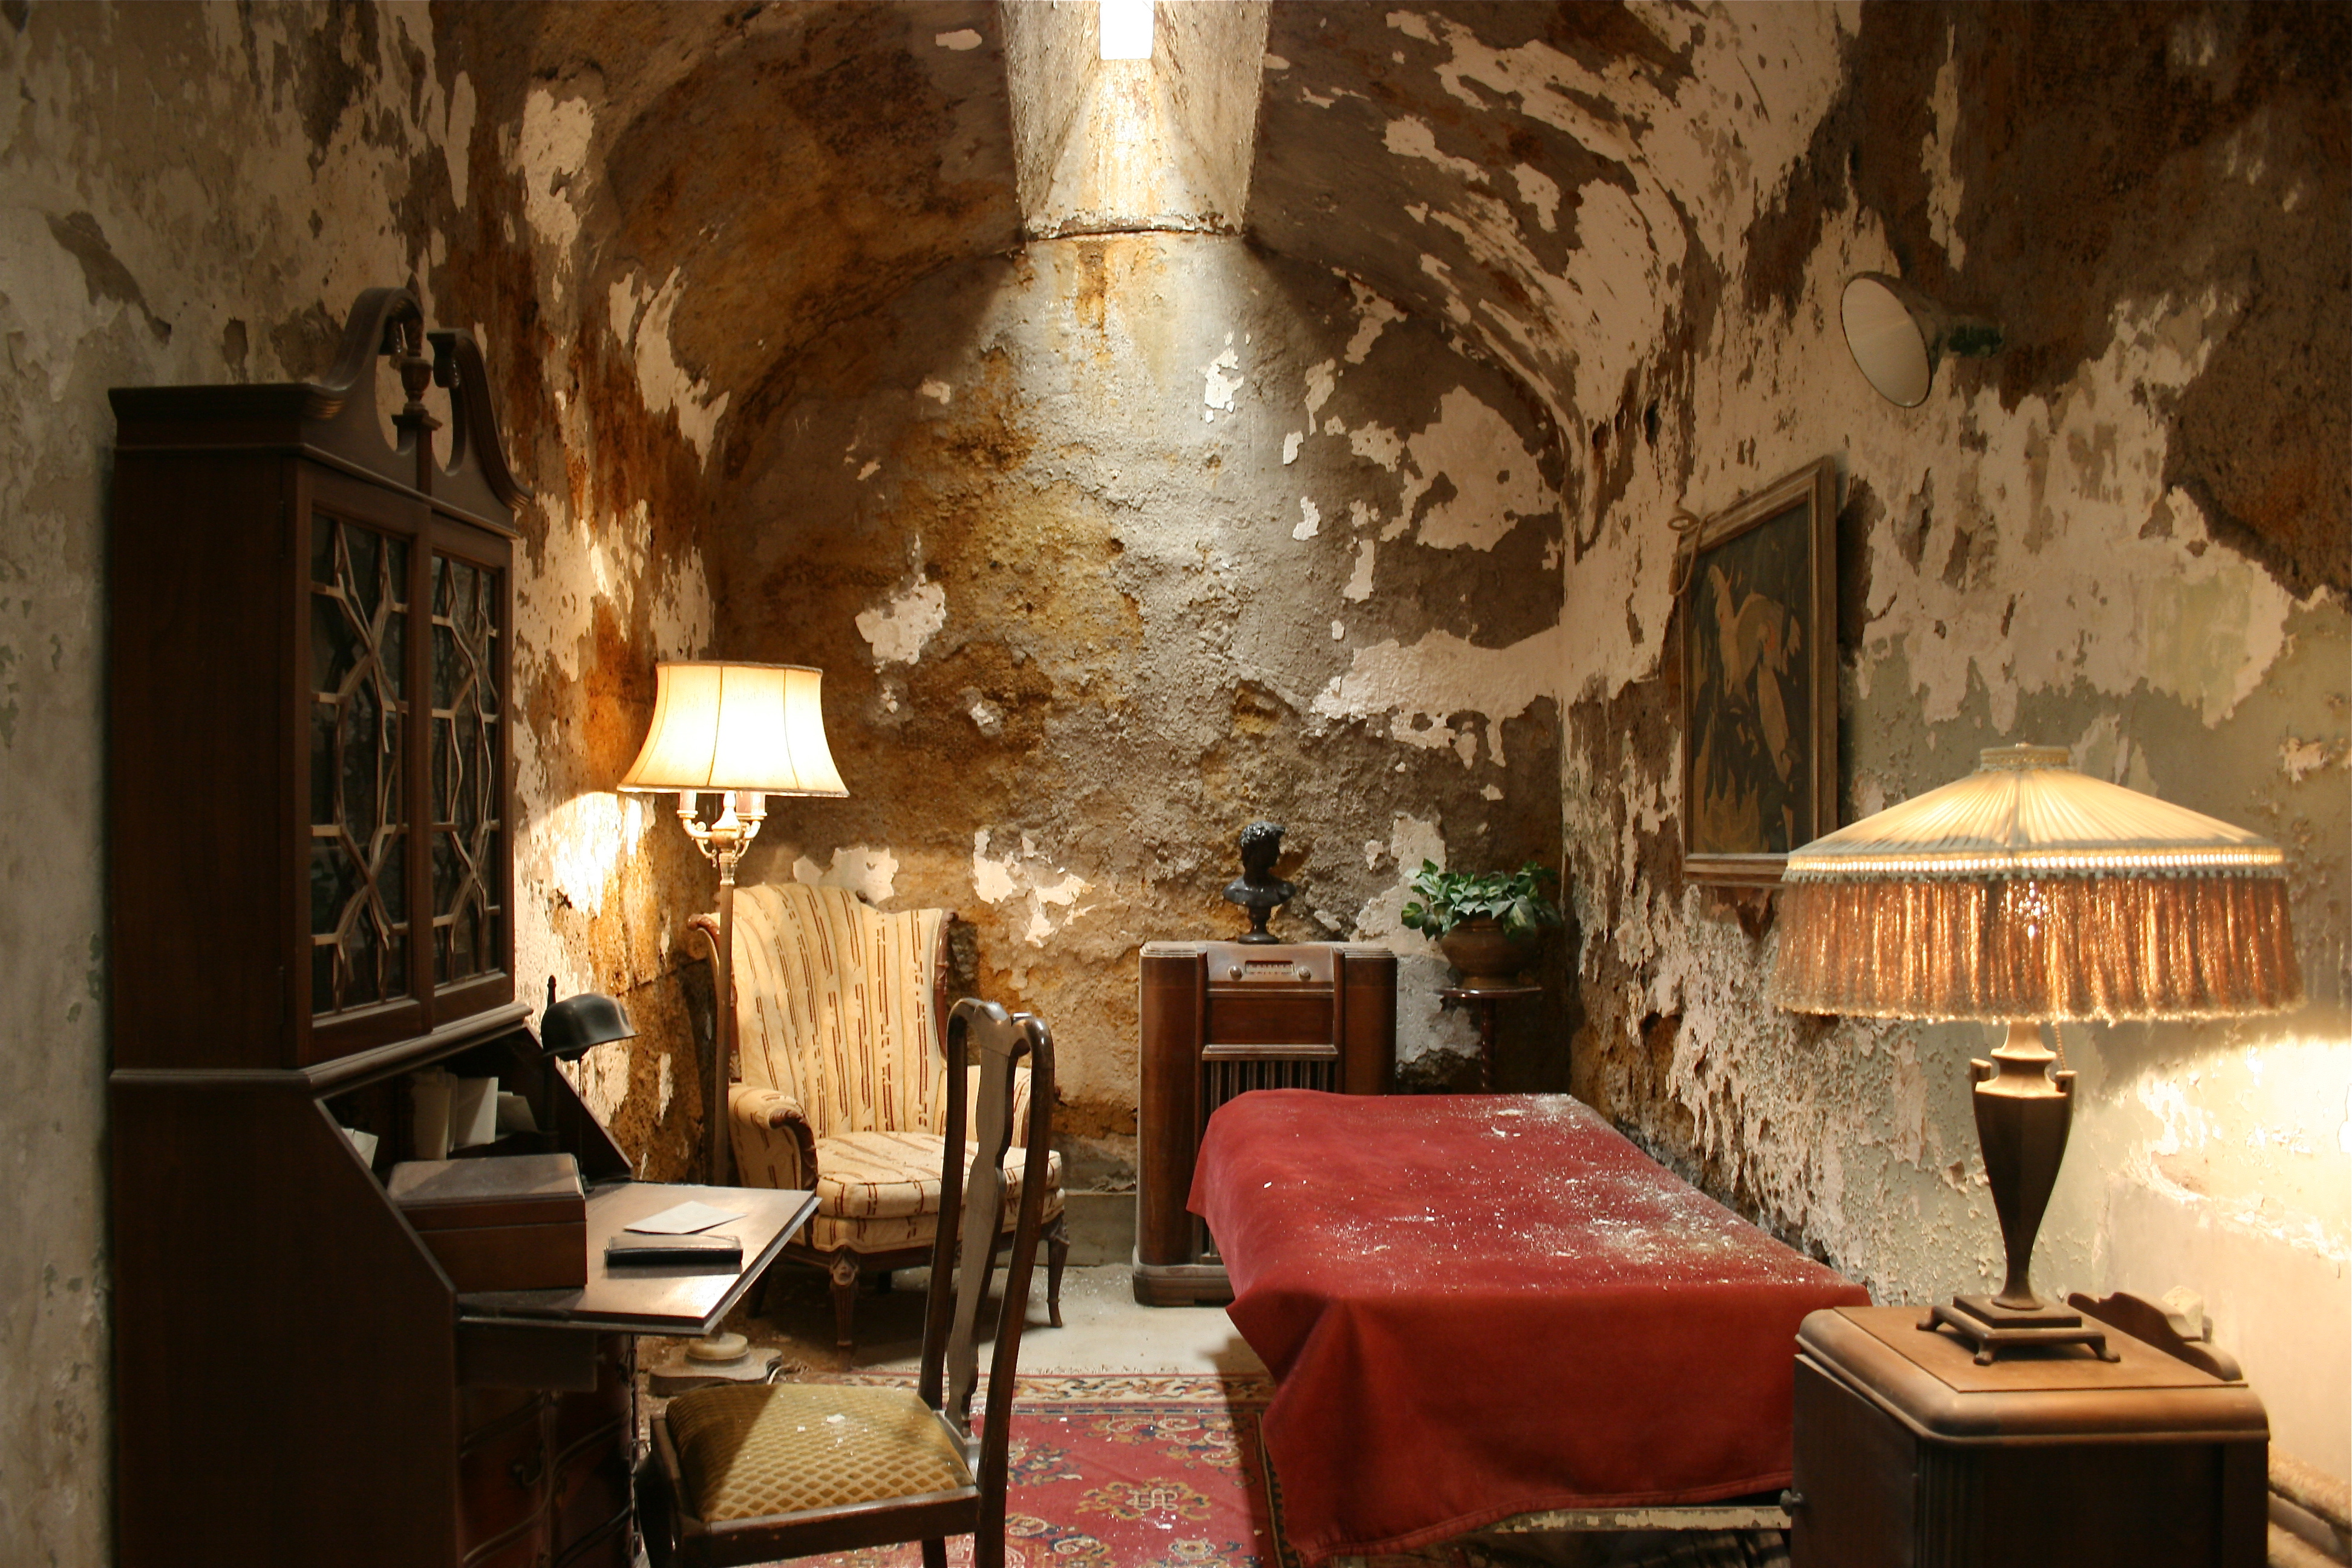 external image Al-capone-cell.jpg